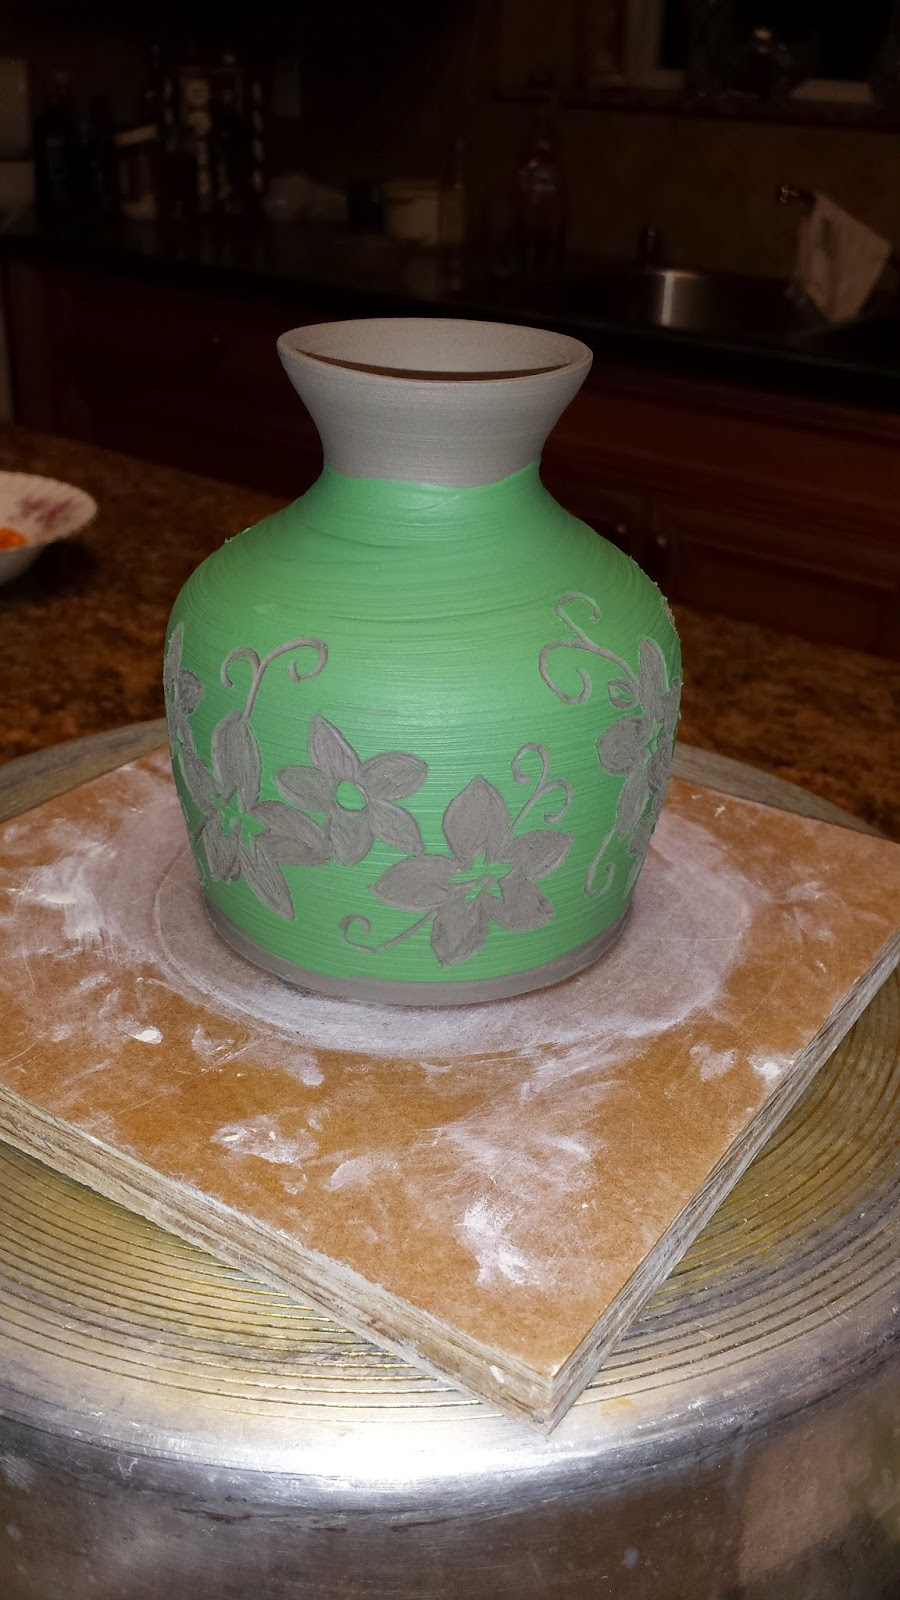 Sgraffito white flowers on green vase, ceramic / pottery in progress.